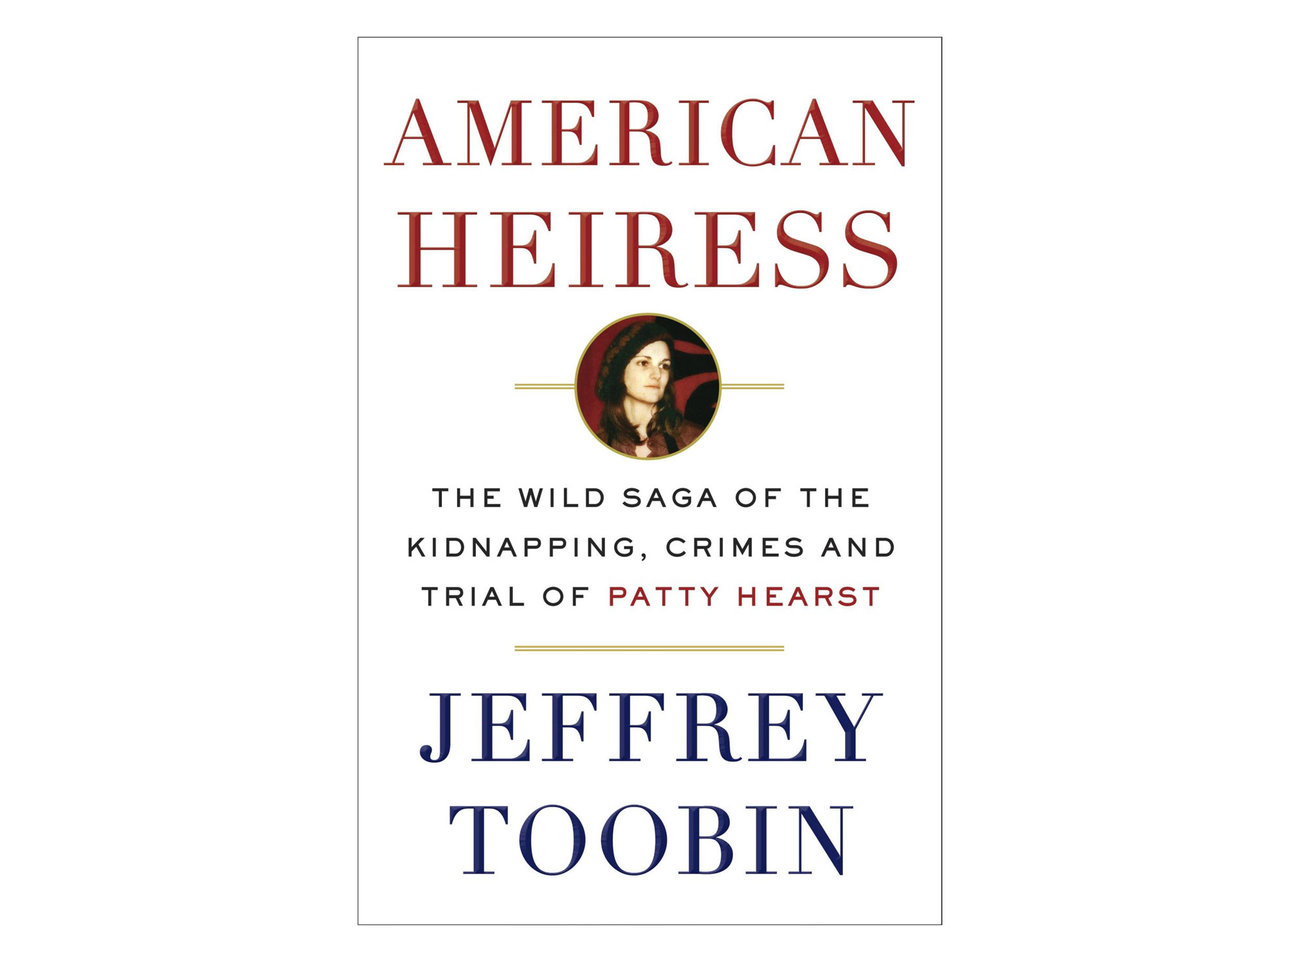 jeffery-toobin-NONFICT0916.jpg